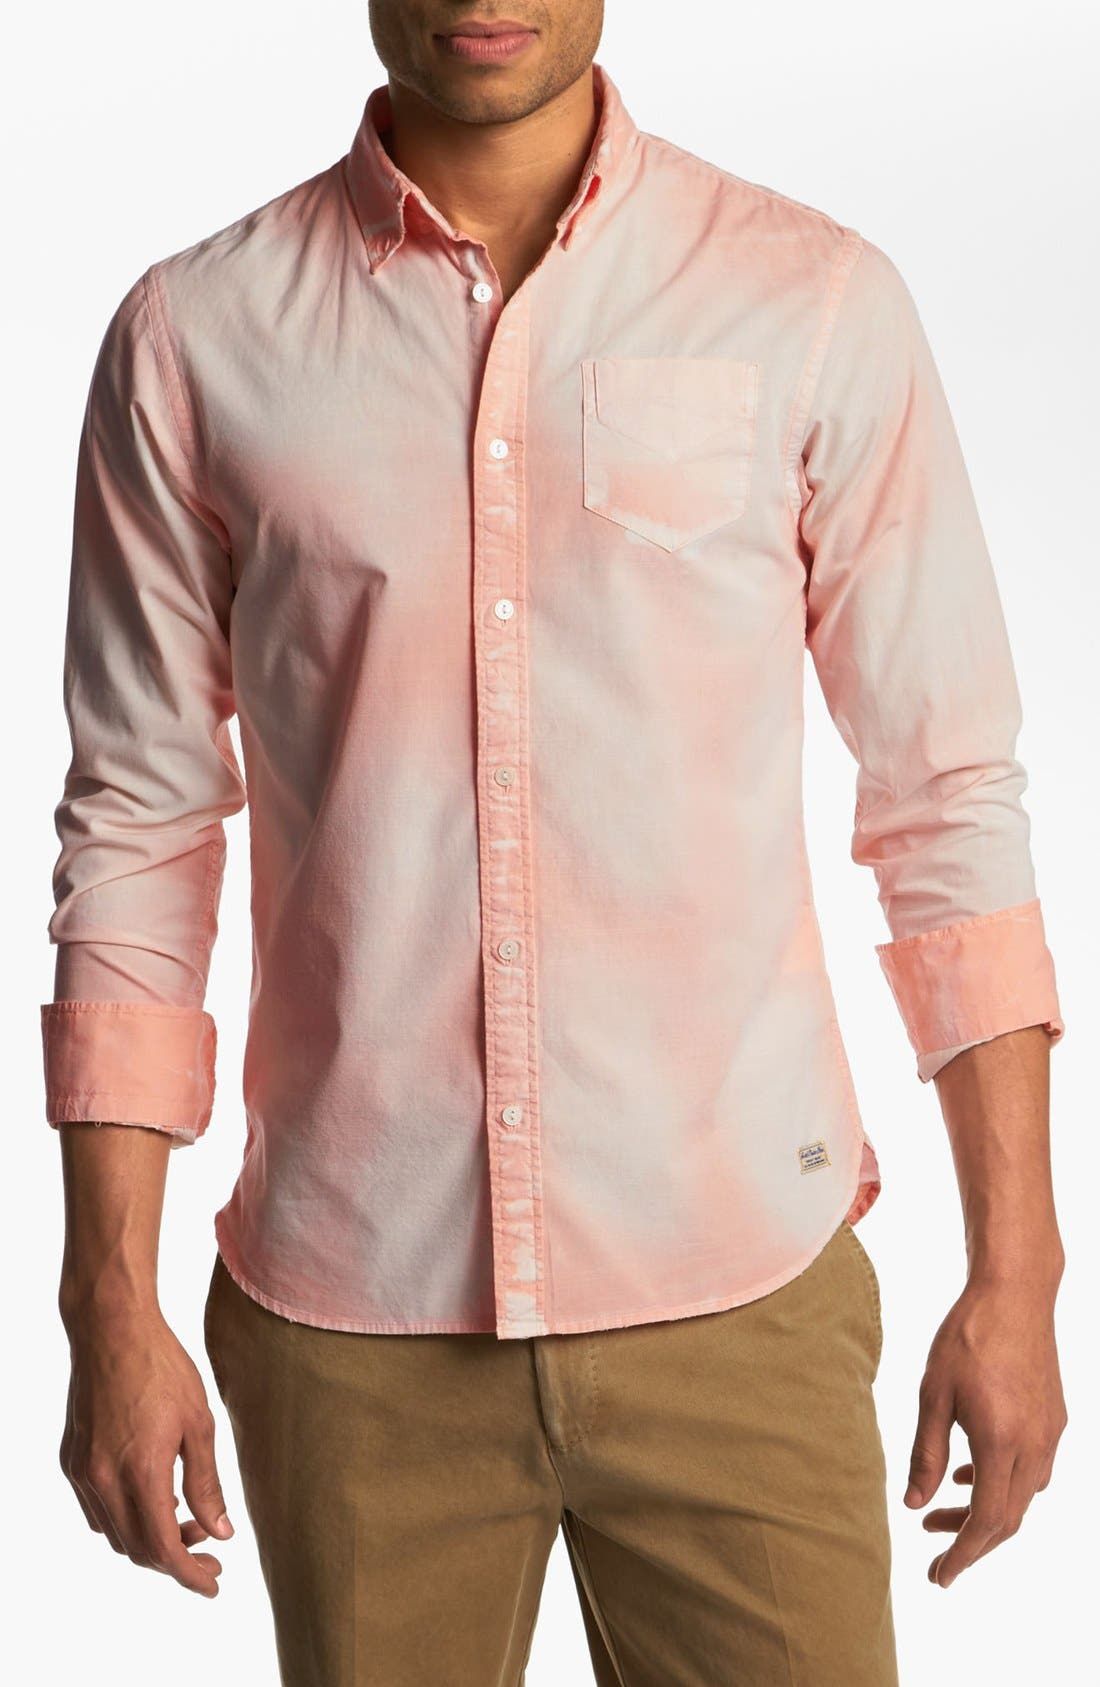 Alternate Image 1 Selected - Scotch & Soda Bleached Woven Shirt